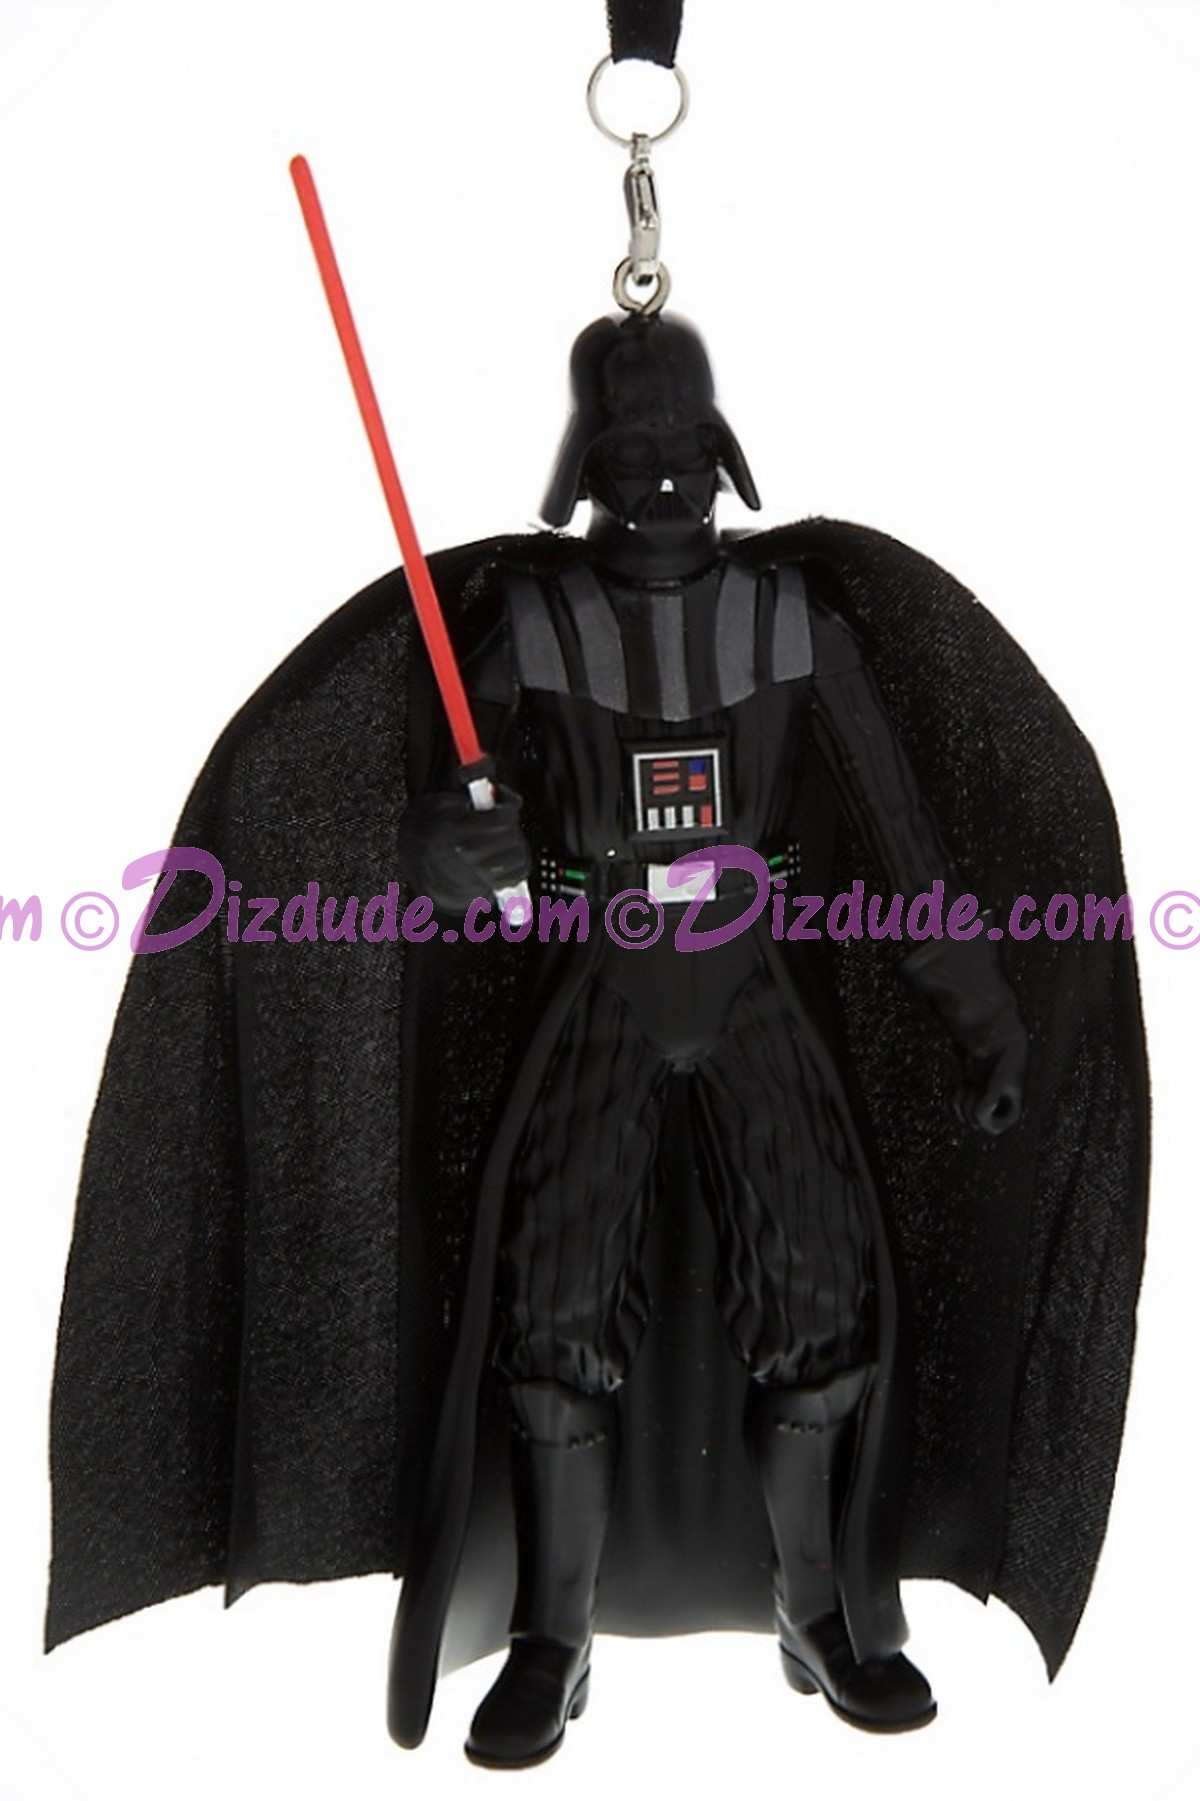 Darth Vader 3D Christmas Ornament - Disney Star Wars © Dizdude.com